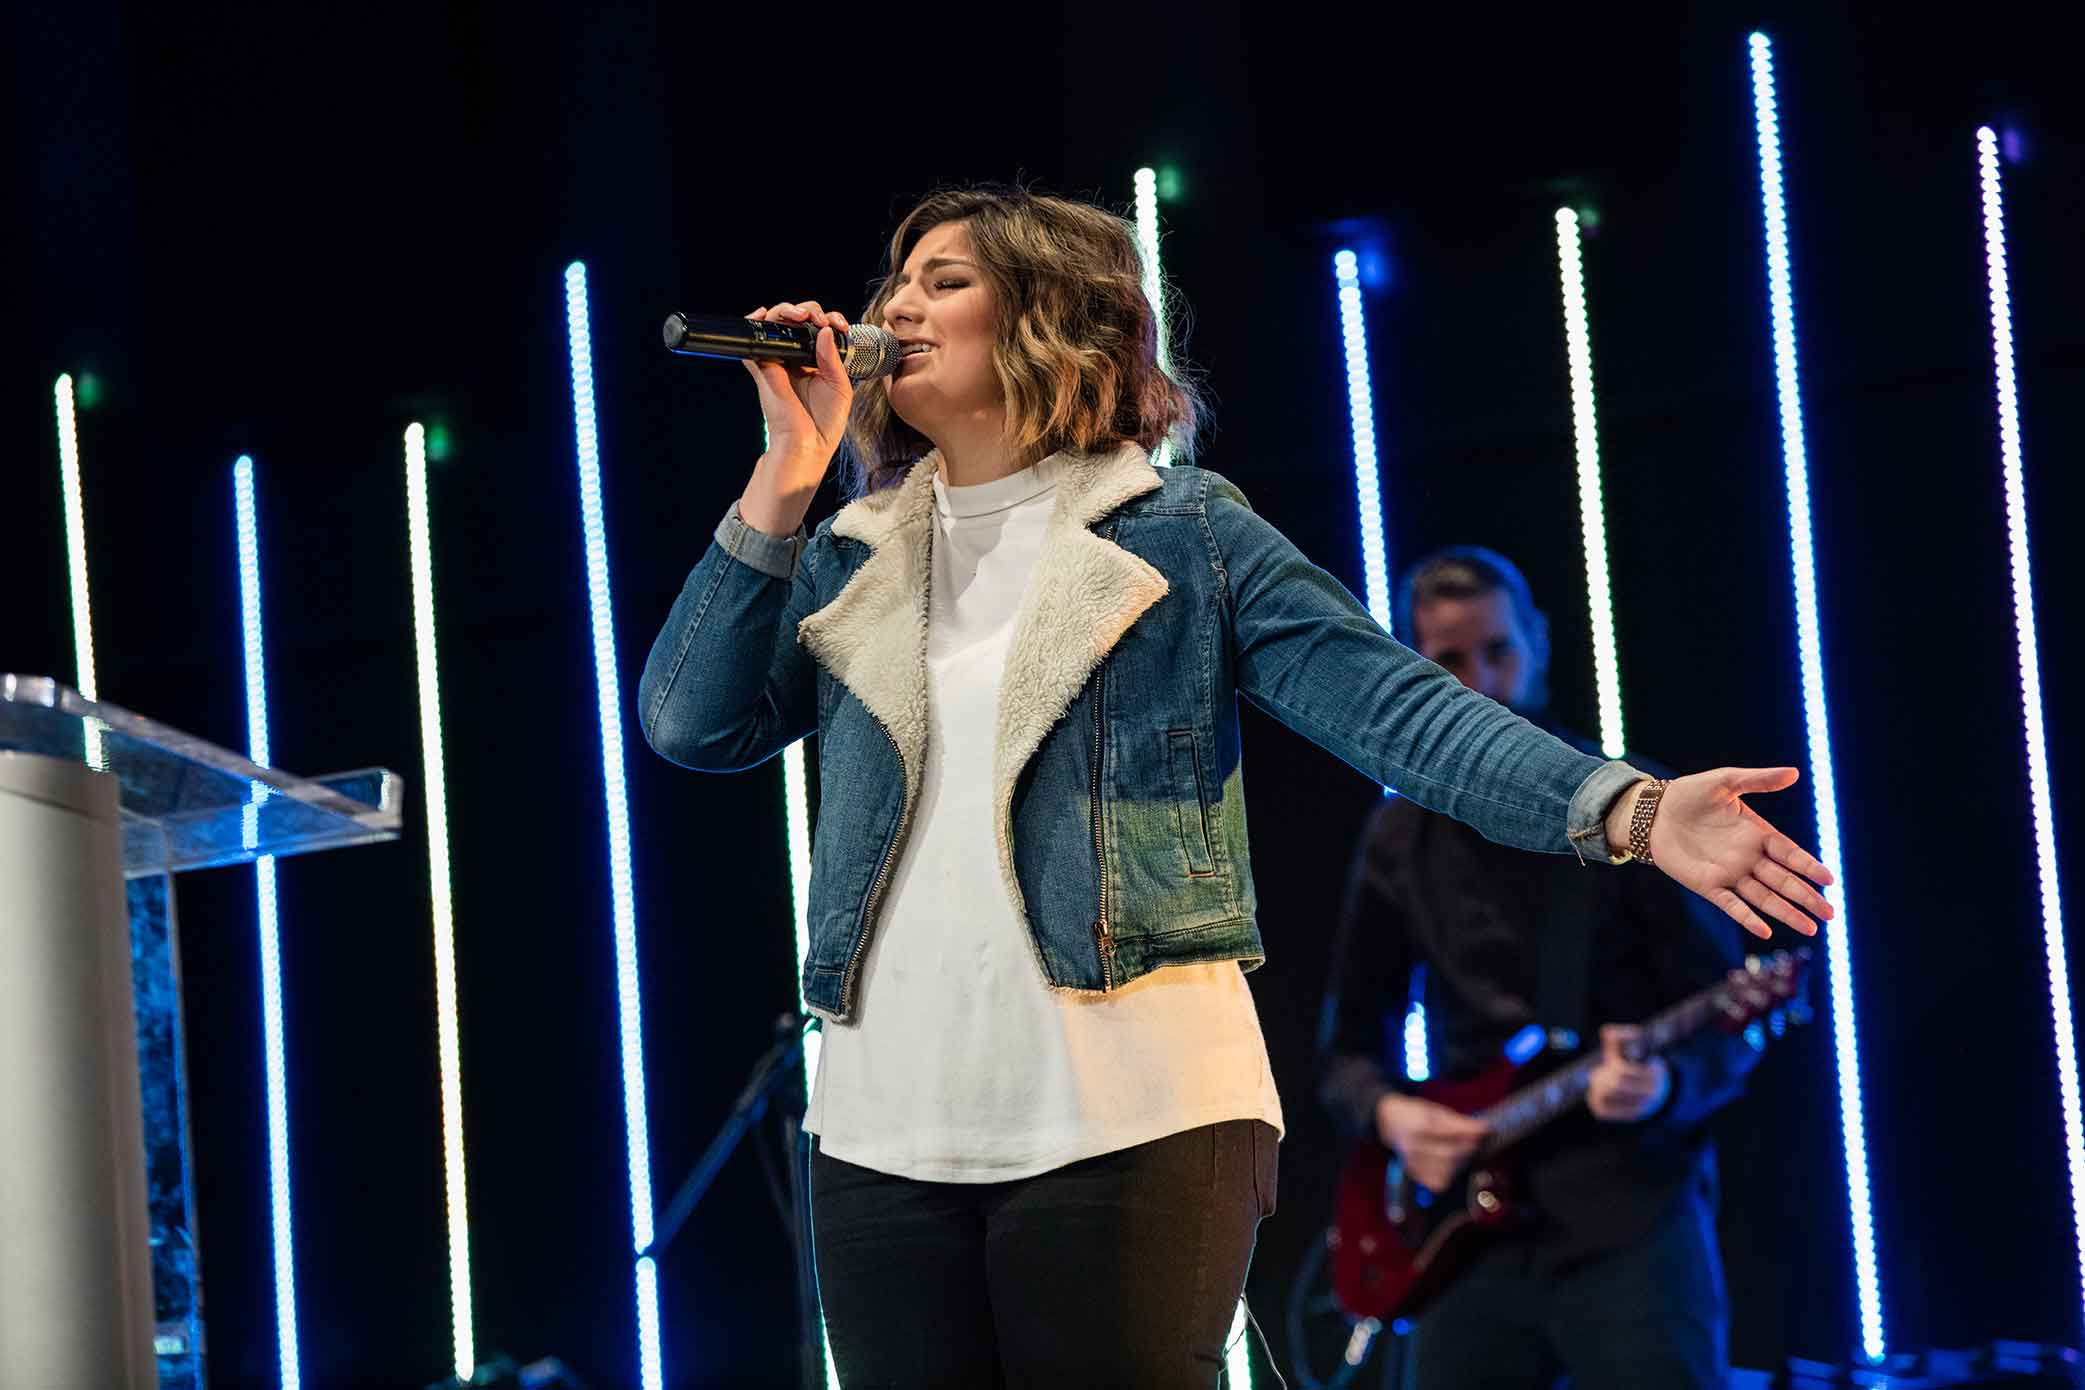 Student Leading worship on stage